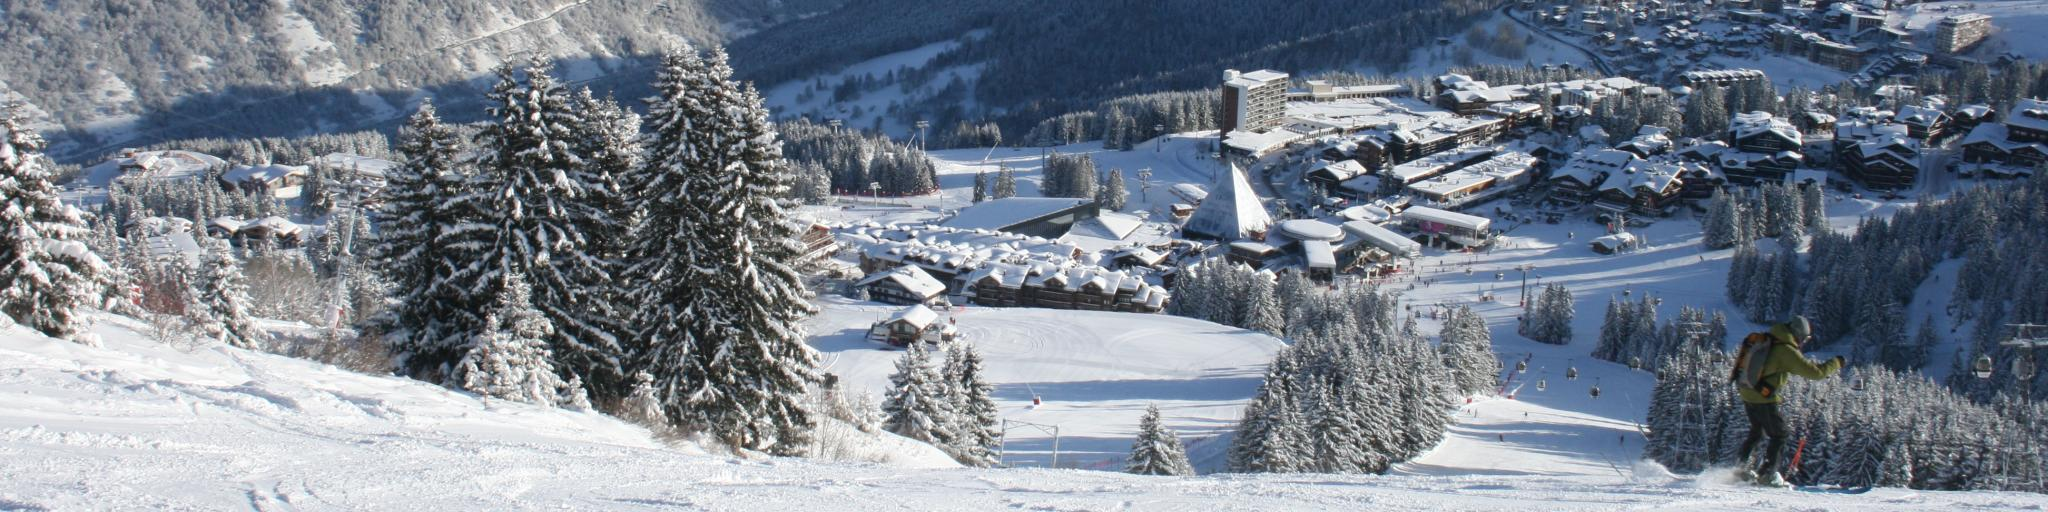 Snowy ski runs leading down to the resort town of Courchevel